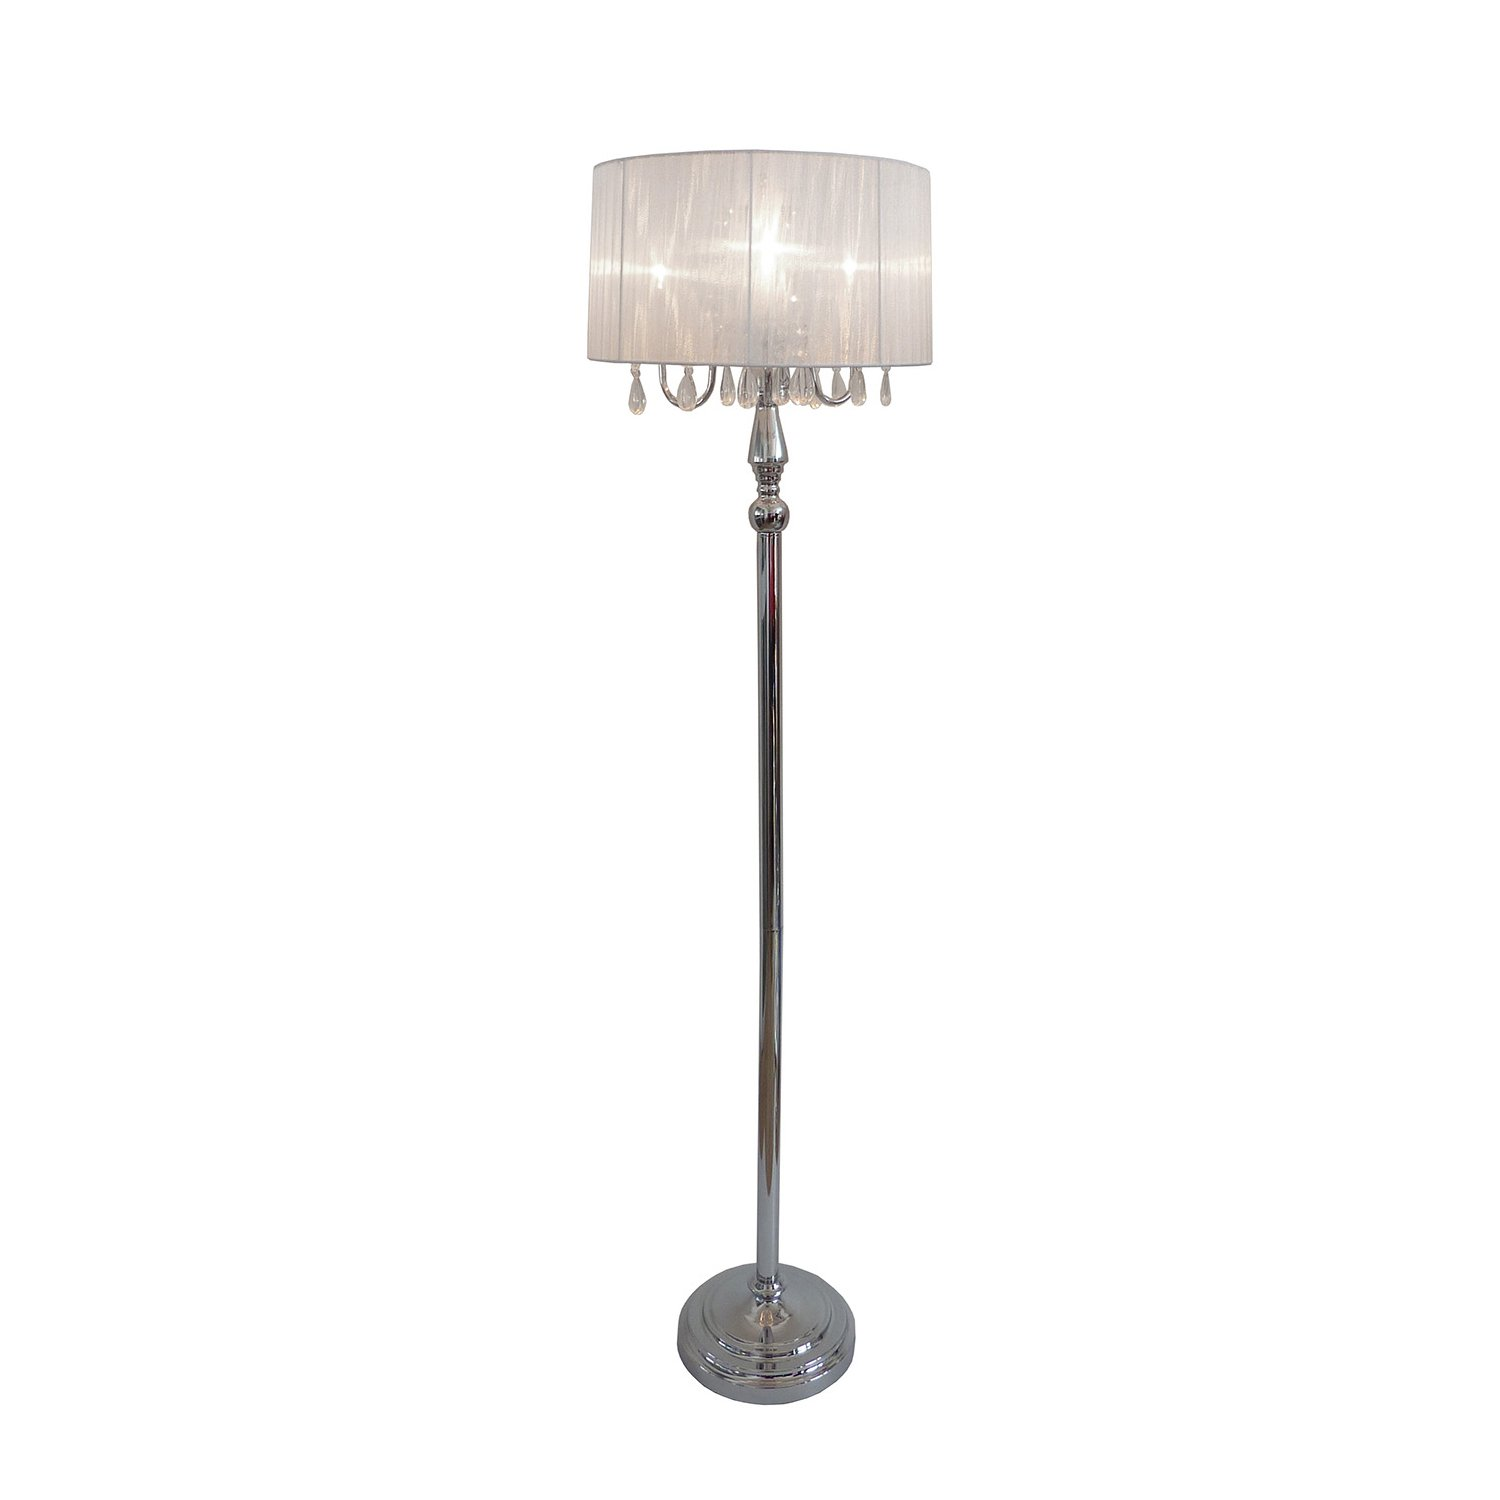 Elegant Designs LF1002-WHT Sheer Shade Chrome Floor Lamp